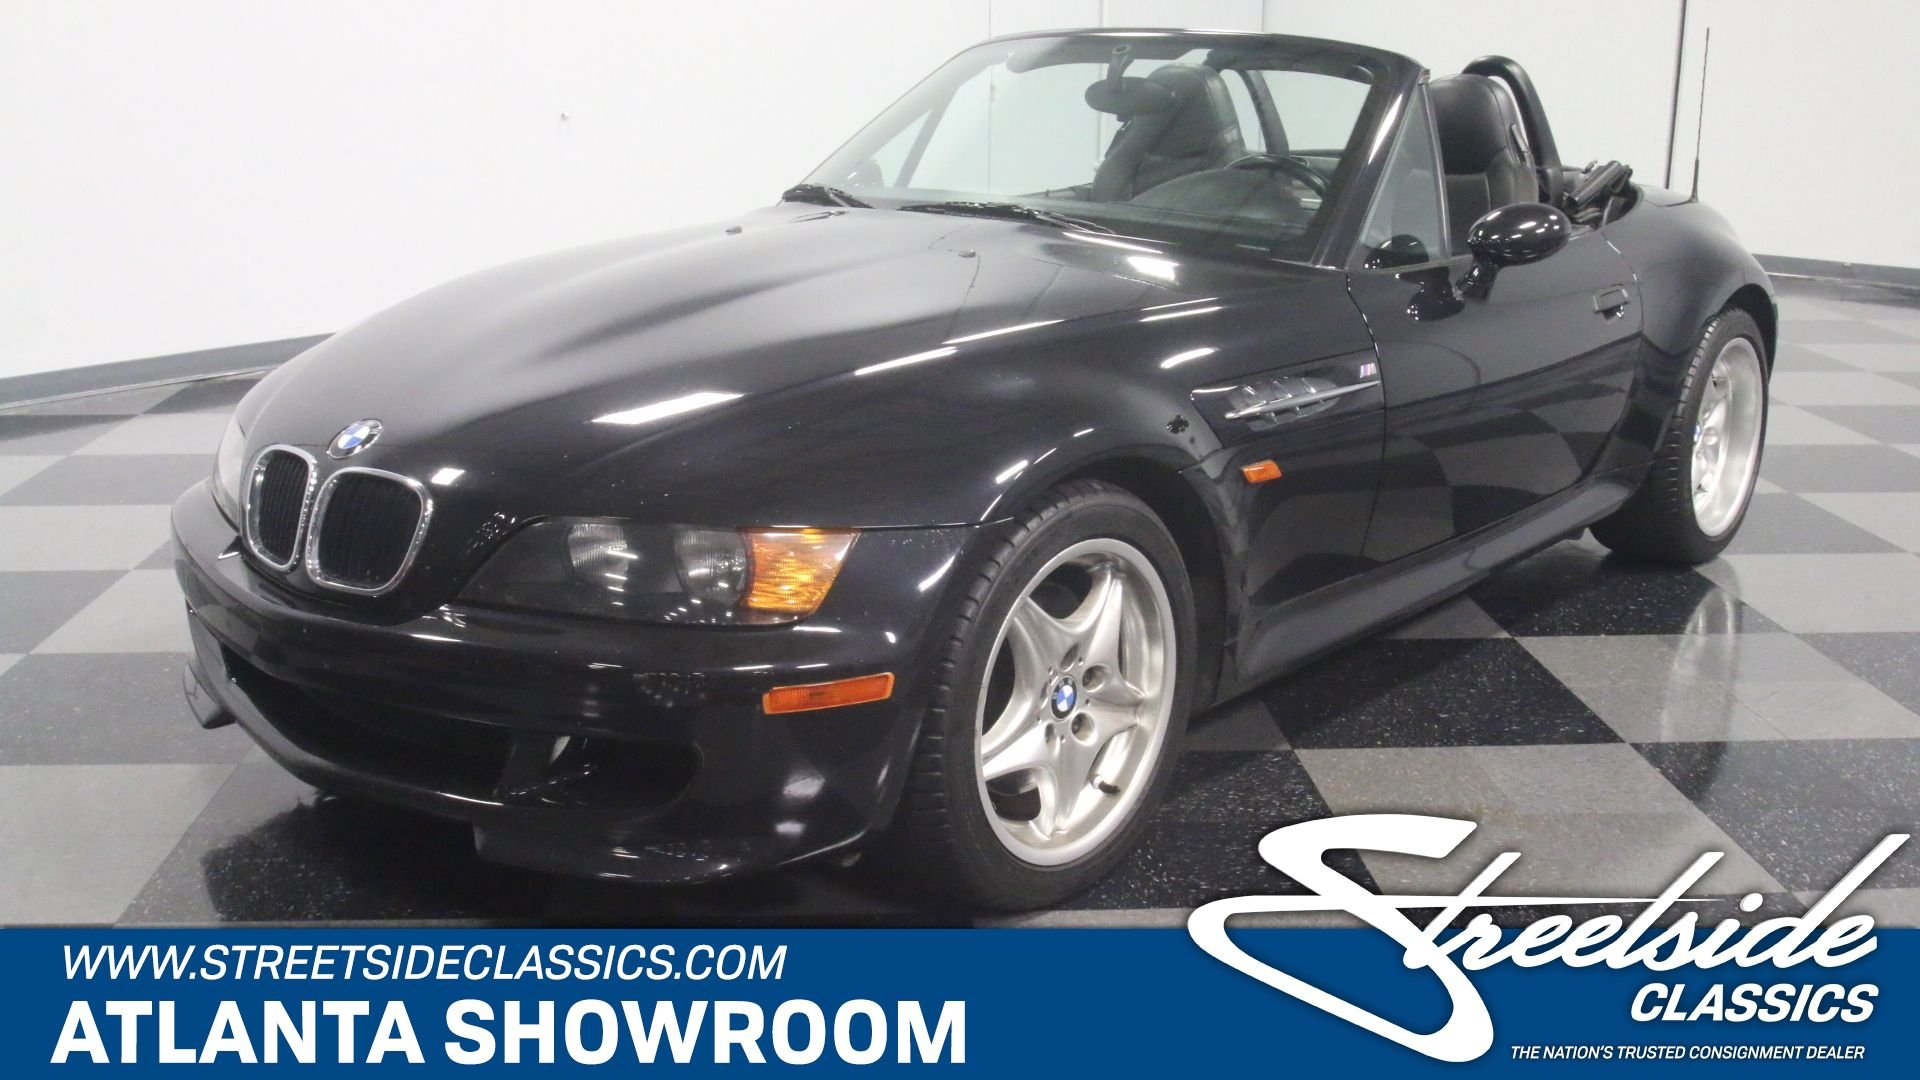 1998 Bmw Z3 M Roadster Streetside Classics The Nation S Trusted Classic Car Consignment Dealer